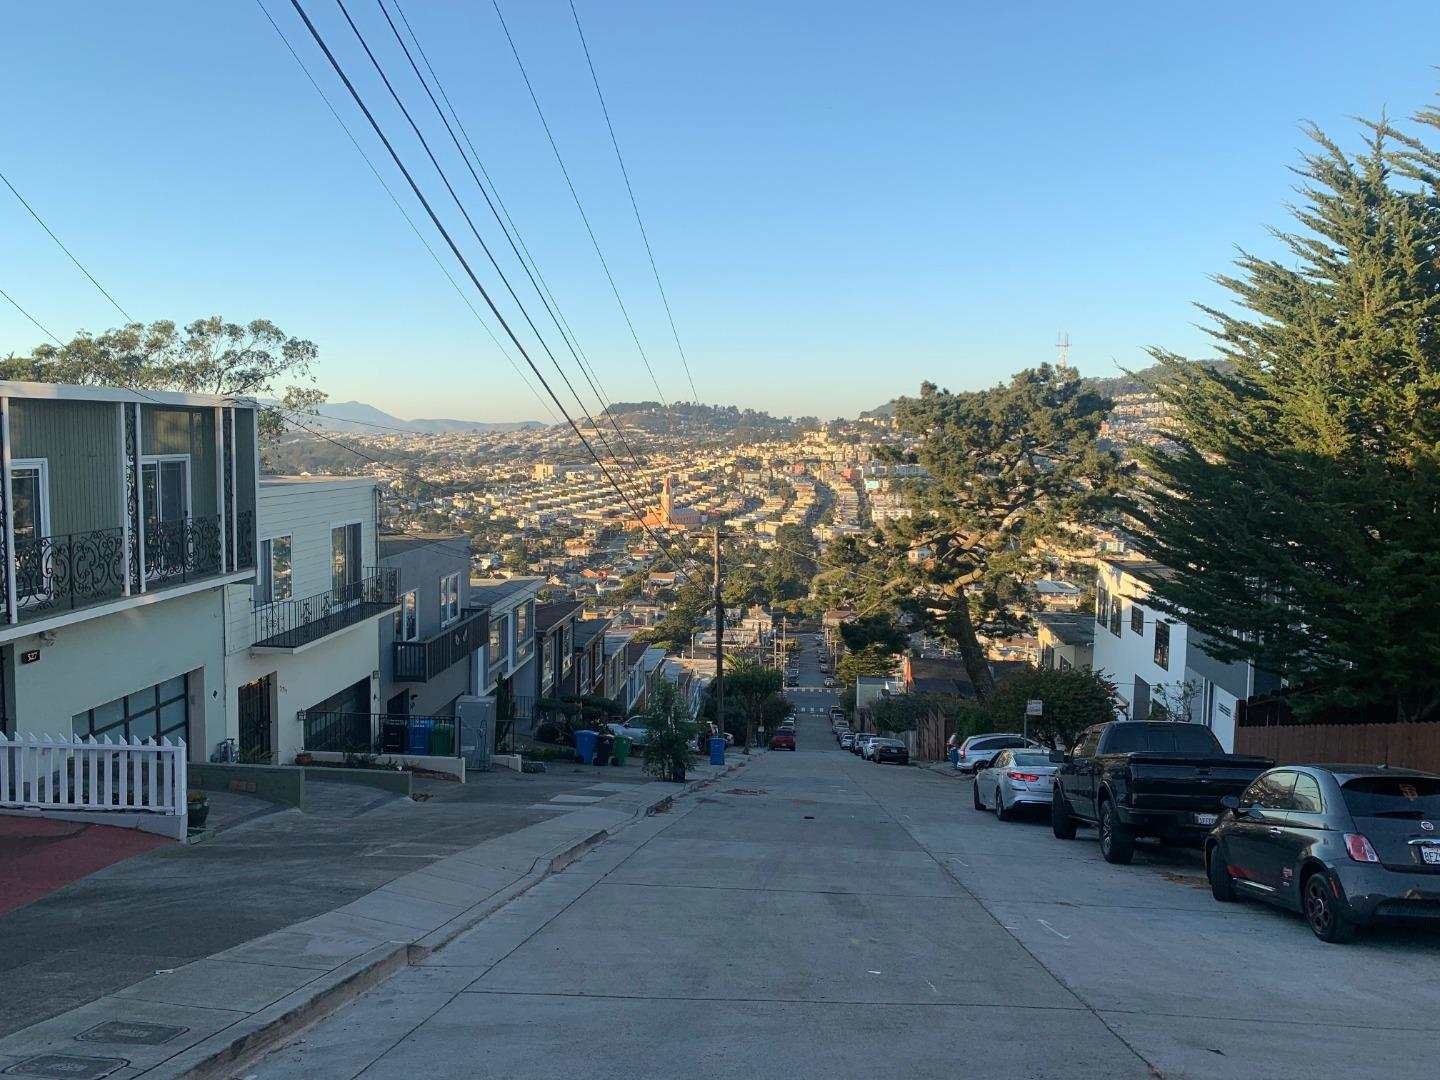 Rare west-face Merced Heights- own, rent, both!  Incredible vast SF city. Fantastic Pac Ocean / Bay views. Private cul-de-sac st. Mstly orig homeownrs! Newr marbl brkfast conter-top adjacnt dine rm, live rm w travrtin firepl. Hardwd flrs thruout.  Kit- disposal, dishwashr, oven.  Dwnstairs unit- sep entrance, storage, halwy closet, private aces- backyrd & gar.... bonus rm before entering main room / studio w private bath.  Remrkable ocean views accent sunny dwnstrs livin-unit- hi-ceilings.  Ext panted '19. Updated bathrm dwnstairs & 2 remodld bathrms w Italian tile, marbl,, slate.  Mastr bathrm Jacuzi tub, dual-sink vanty. Tenant vry cooprativ.  Rent $4,447 mo for top-level only... wonderful oportunty owner-ocupy lowr-levl or rent as extra income. Lower-level mrket rent $2,800. NEAR: Brooks Prk, Lakeview & Ashton Mini Prk, Lake Merced, Lake Merced Prk, Lakeshore, Miraloma Playgrond, Stern Grove Dog Prk, Pine Lake Prk, Ocean Av, San Bruno Mt. Stat/County Prk.  Easy to freway 101, 280.